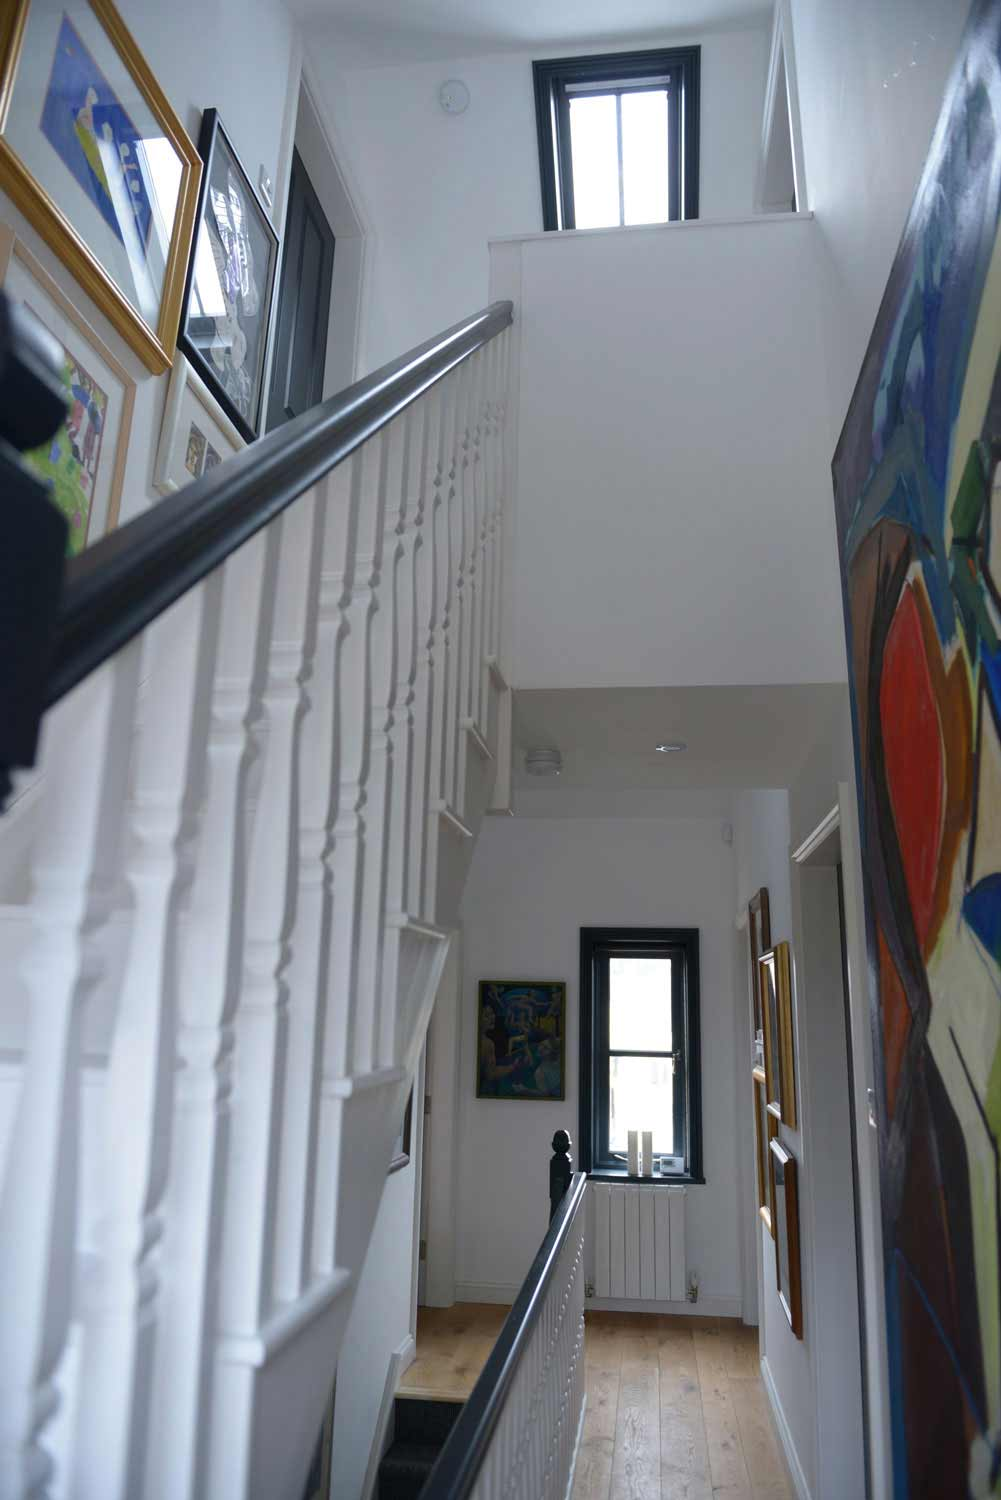 Victorian stairwell balustrade and landing